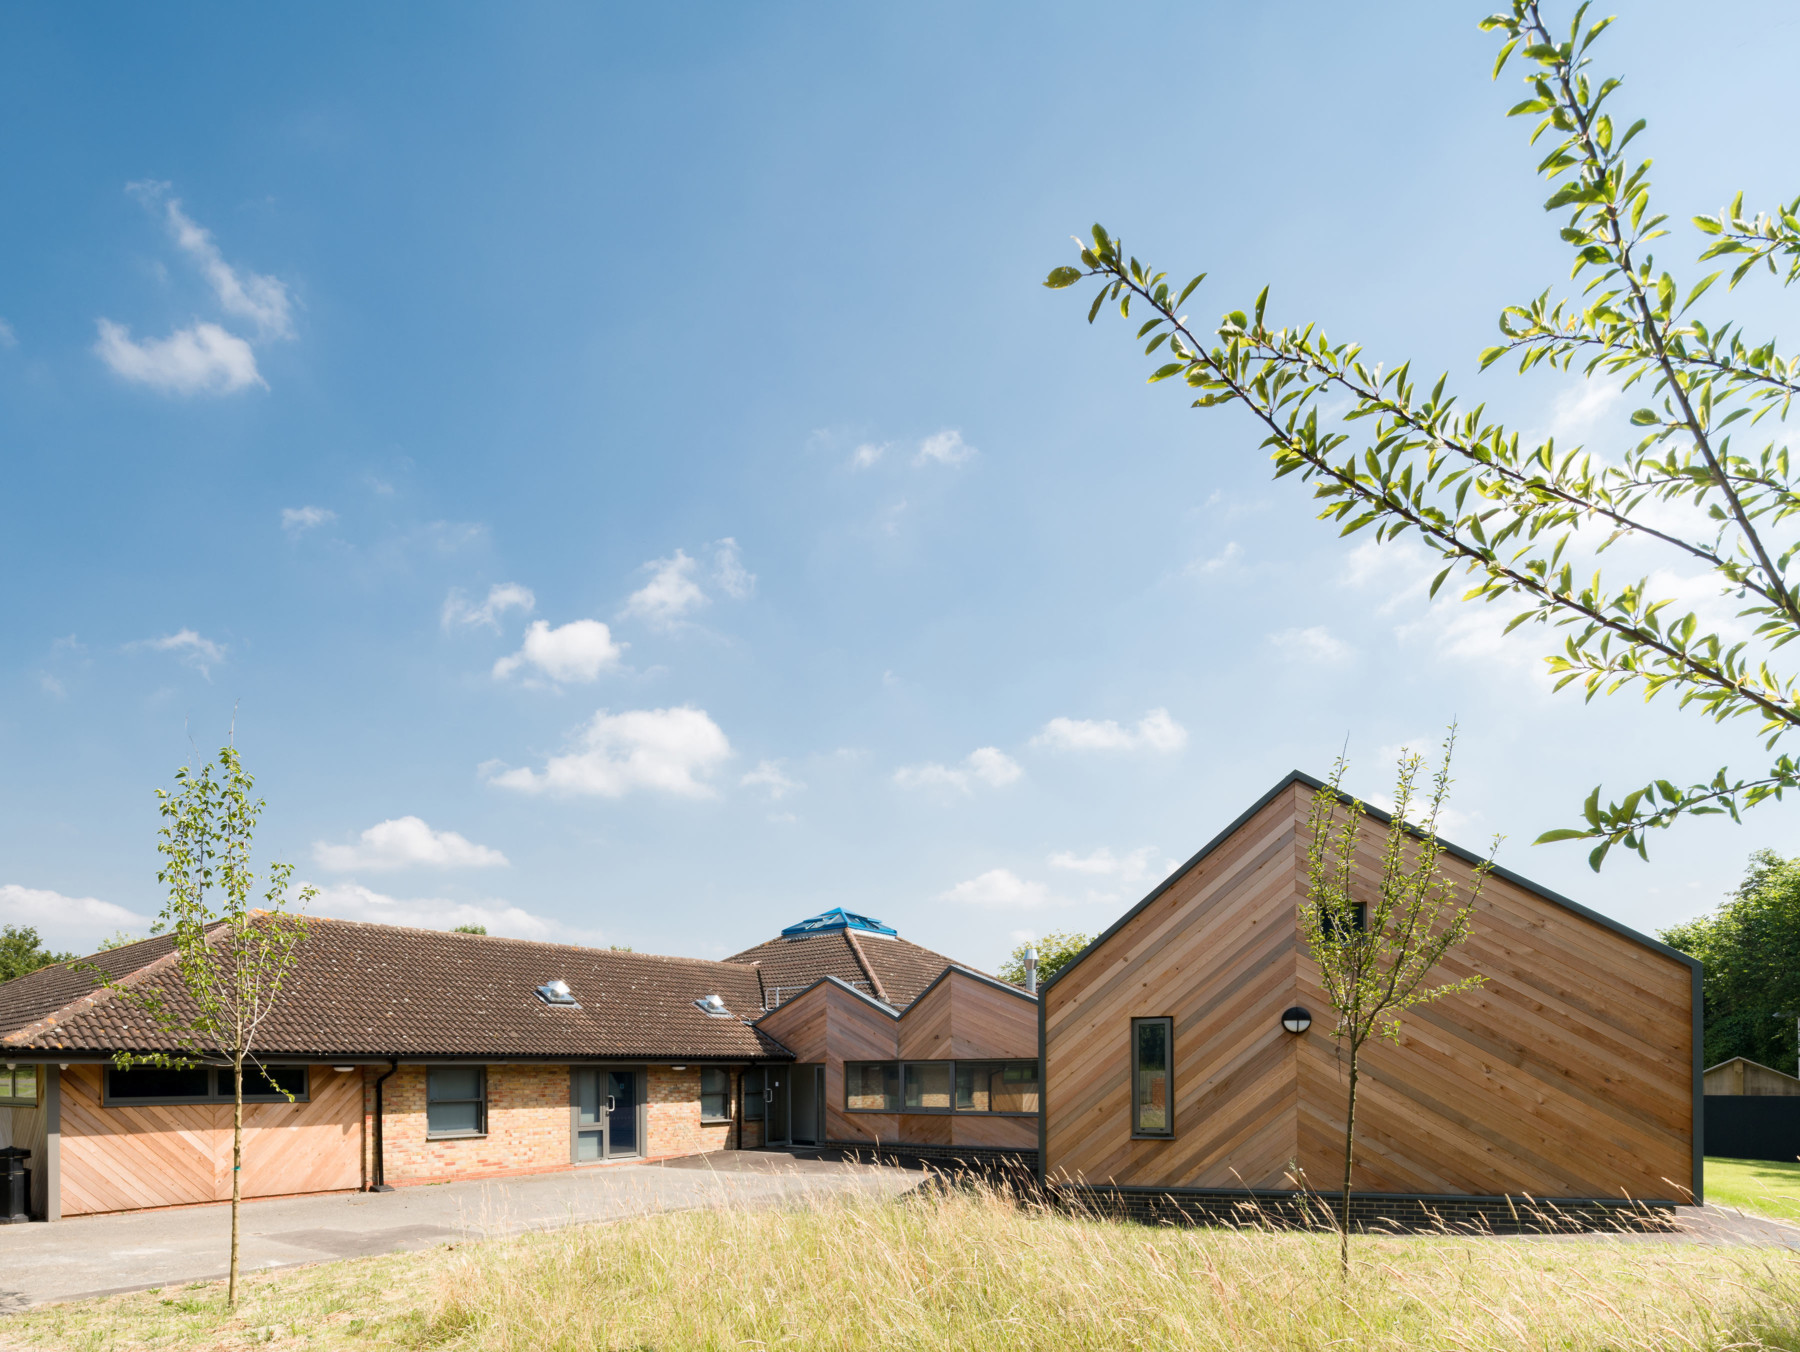 Sarah-Wigglesworth-Architects Roseacres Existing MH 3600